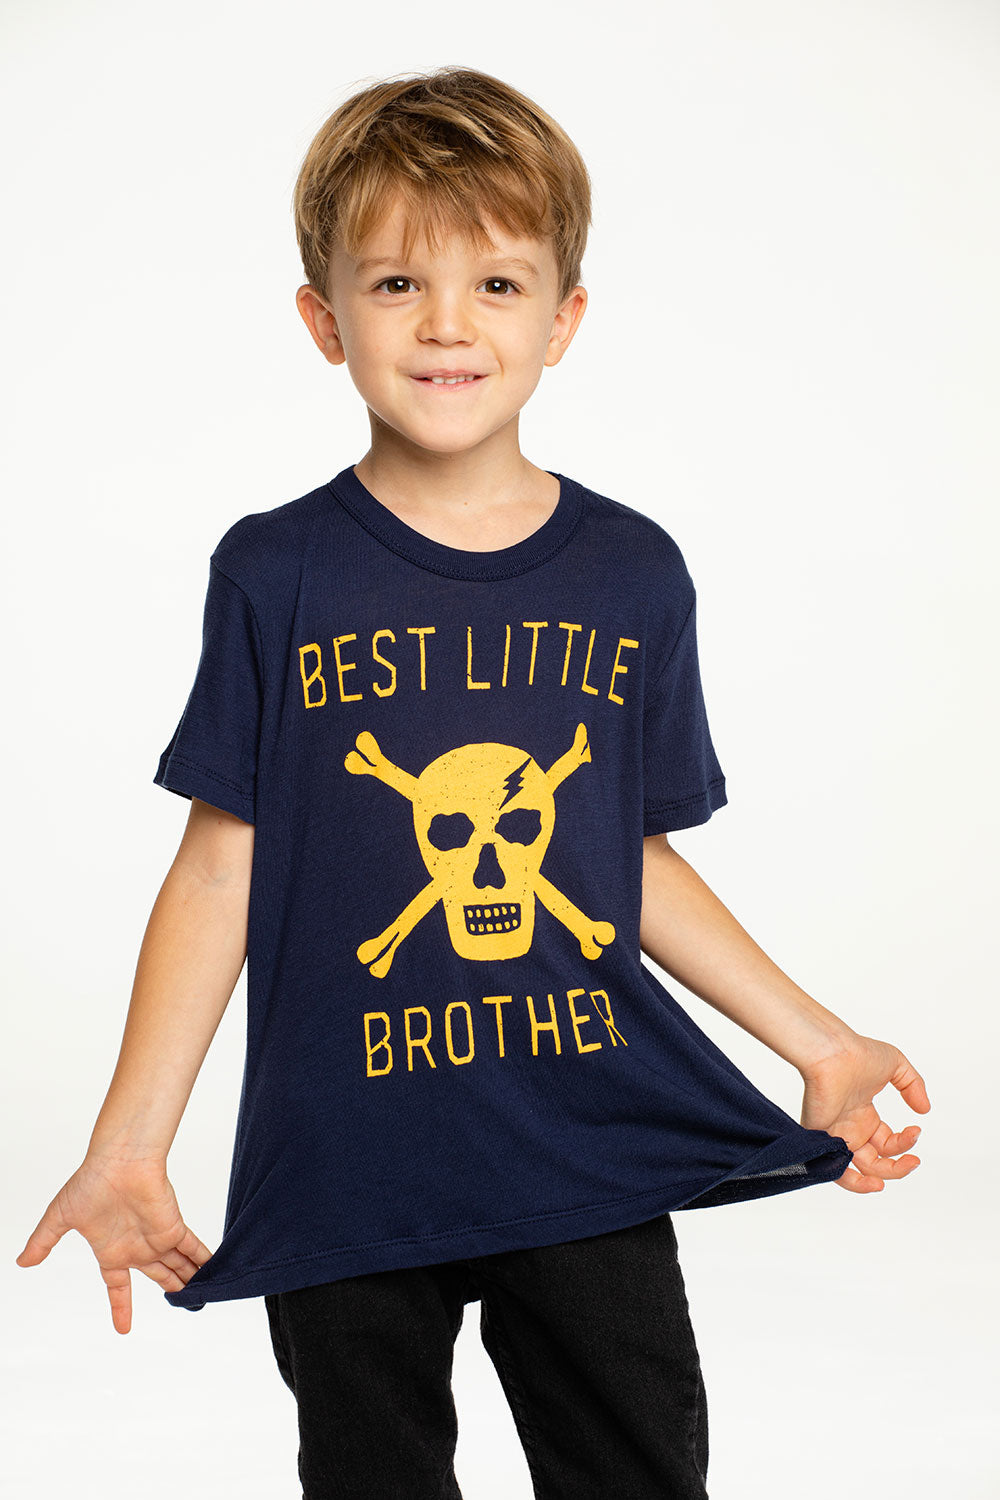 Little Bro BOYS - chaserbrand